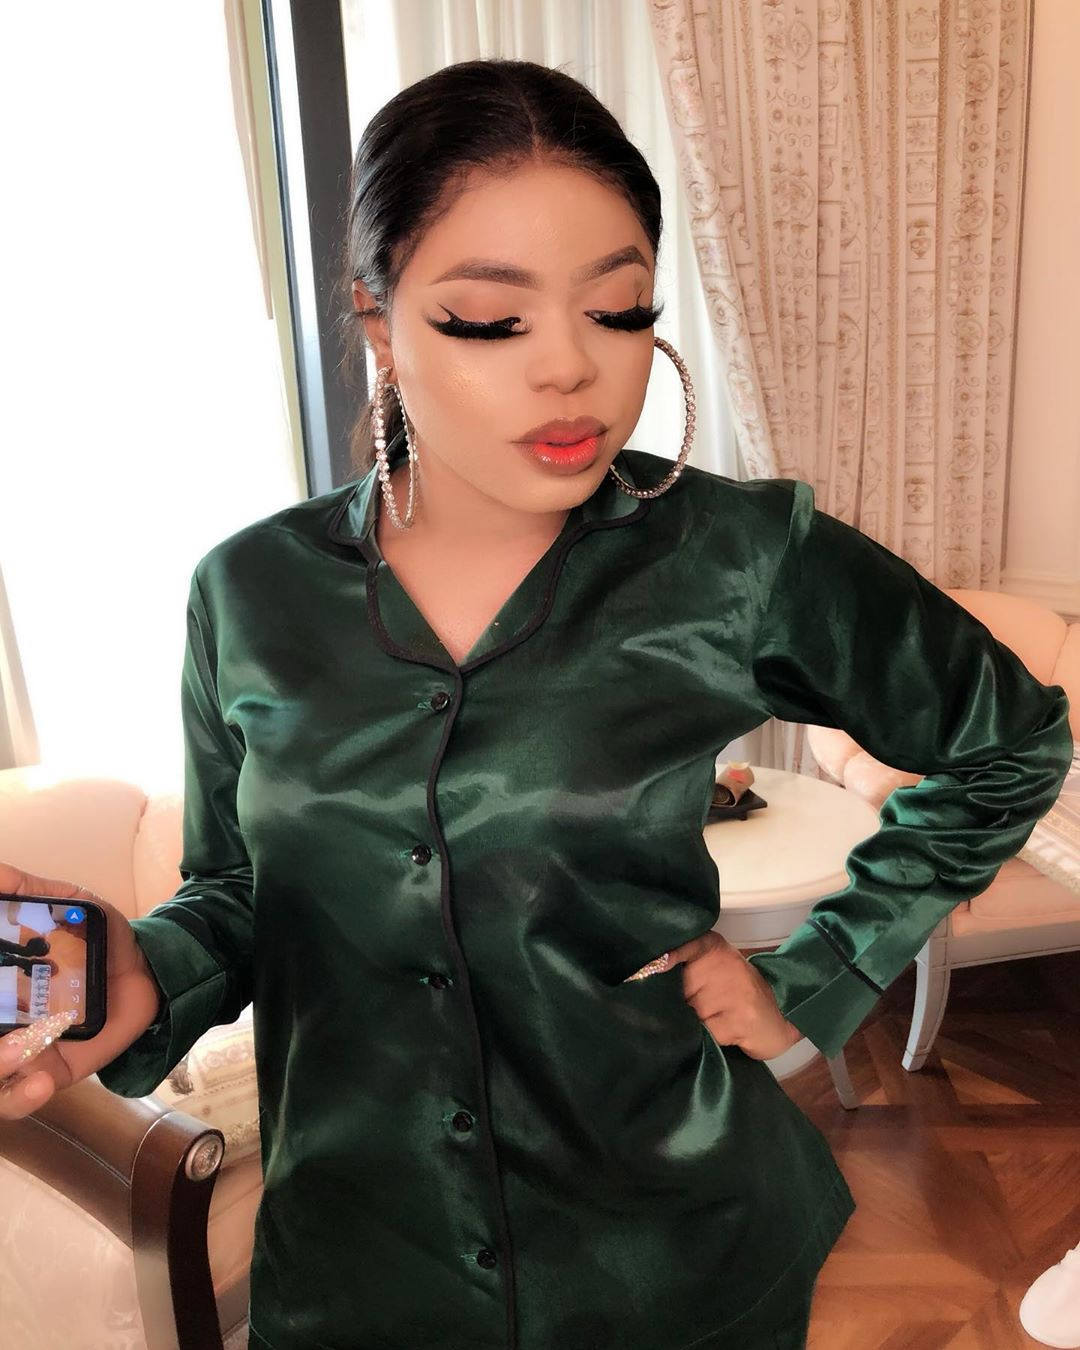 Bobrisky Advises Ladies About Dressing Responsibly In New Viral Video Okuney11